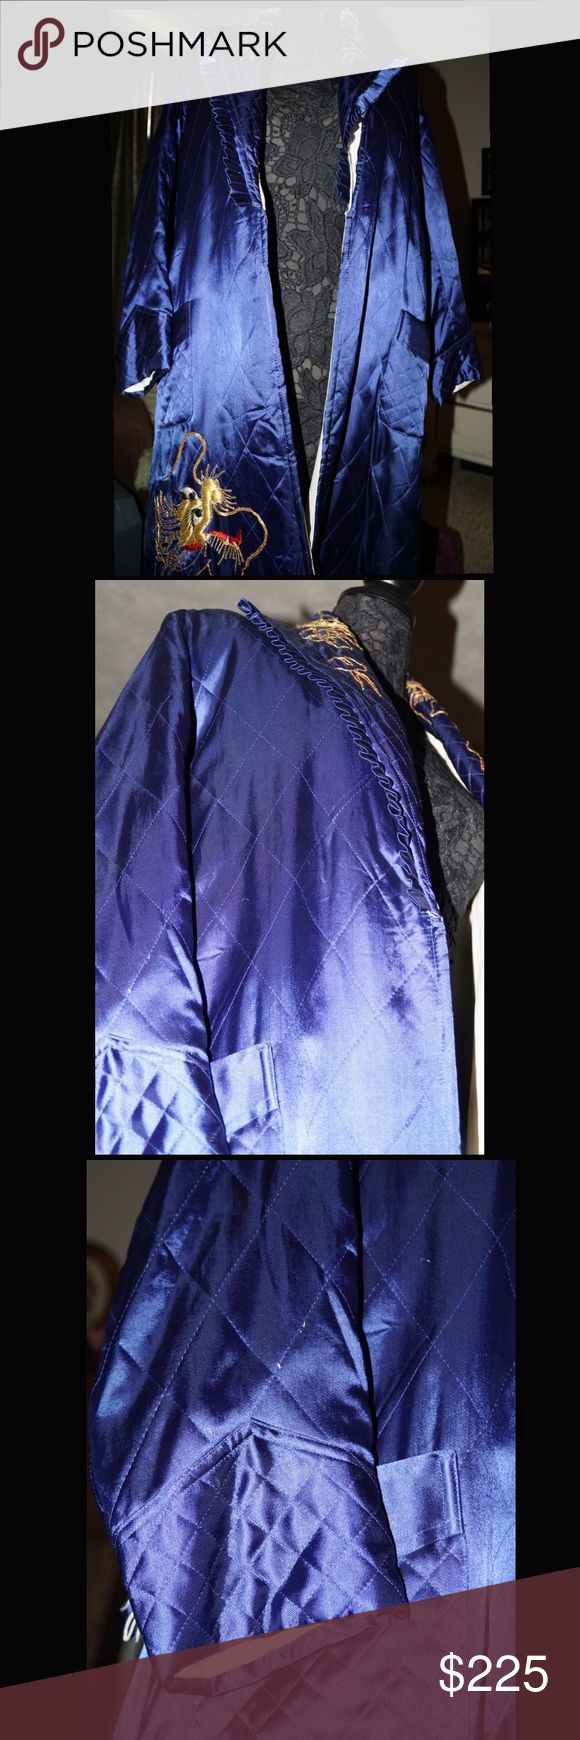 Vintage Japanese Robe Vintage fully lined, quilted, embroidered, silk quilted robe with silk belt. Front pockets. Has been stored in smoke-free, pet free environment for sixty-five years. Royal blue. Some variations in color due to storage. See photos for condition. Truly a piece of art. Yamato CR Intimates & Sleepwear Robes